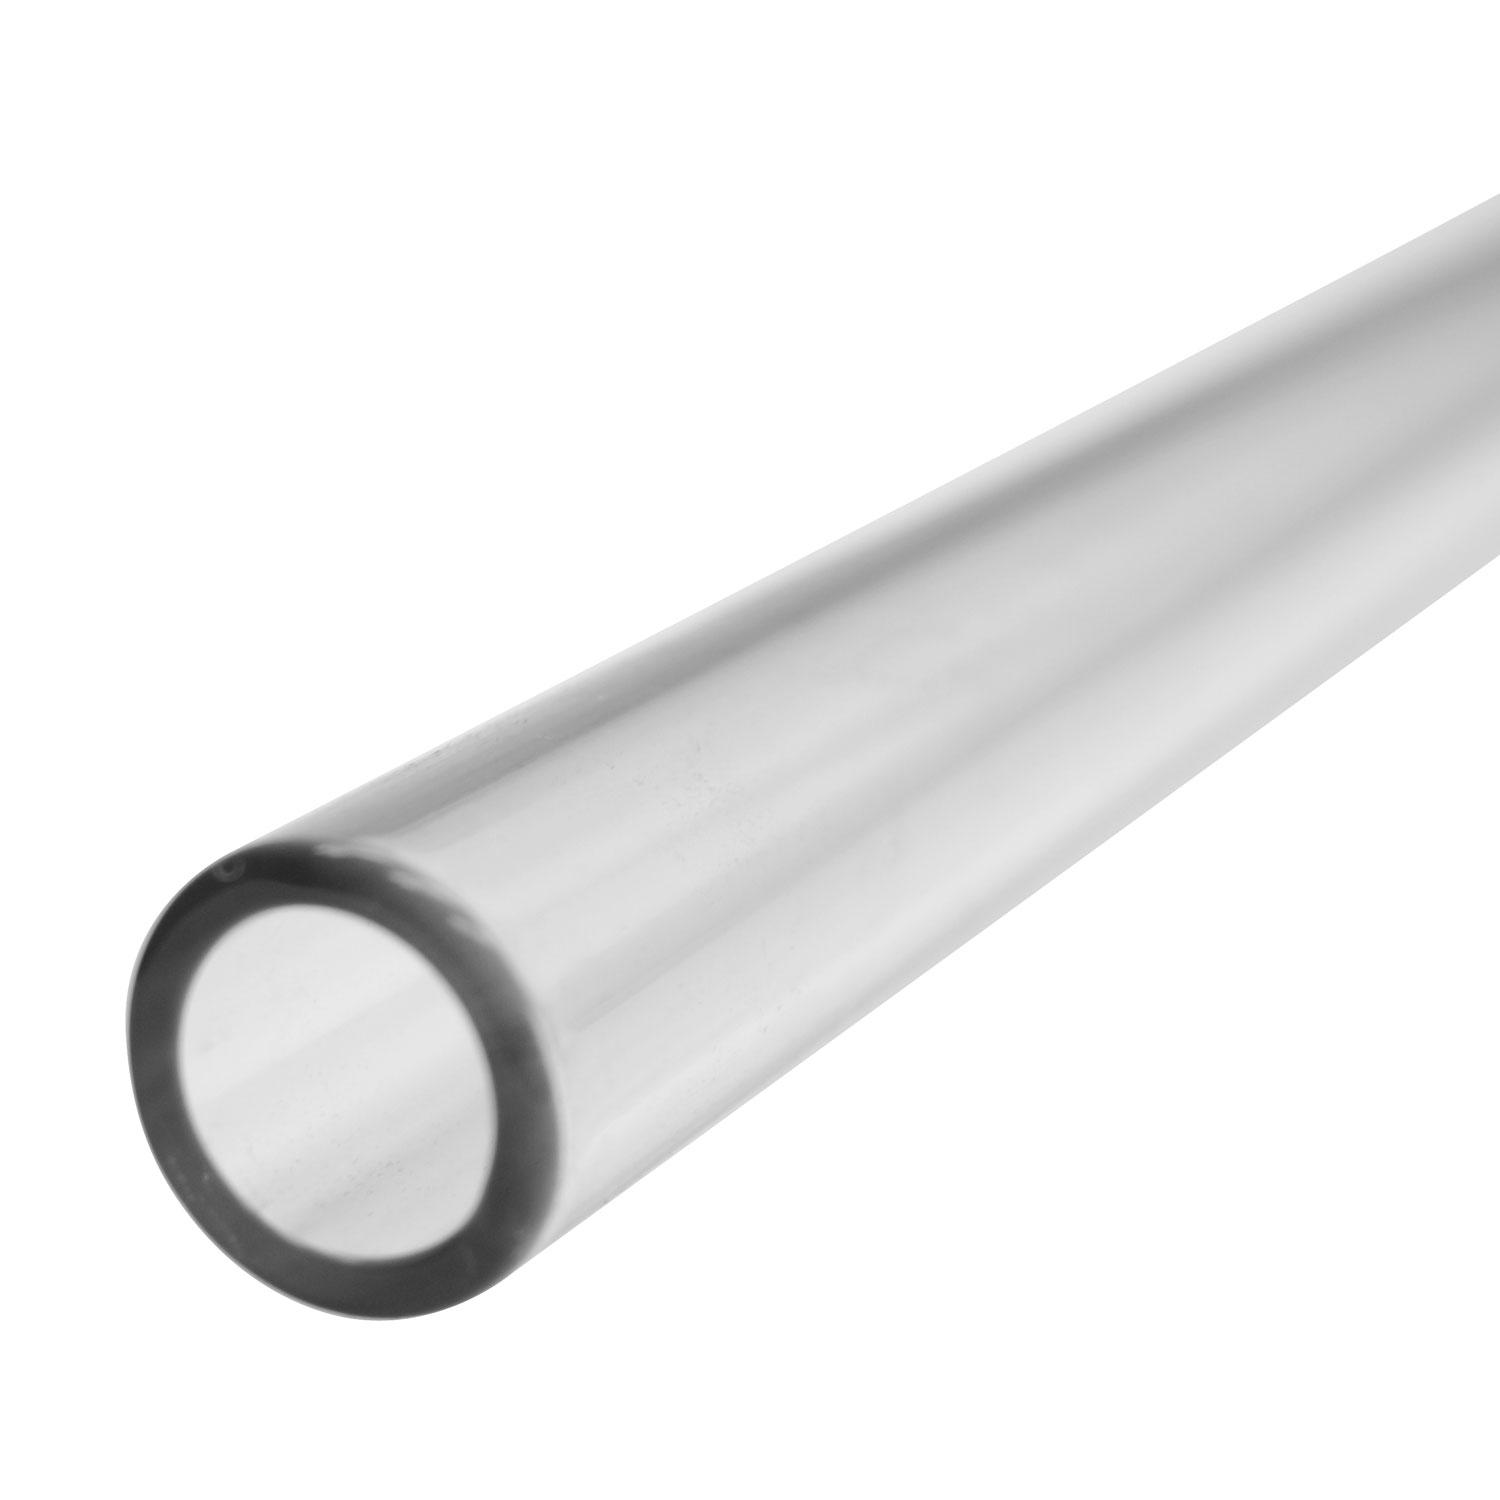 22mm Clear Simax Tube, 3mm Wall - 33 COE